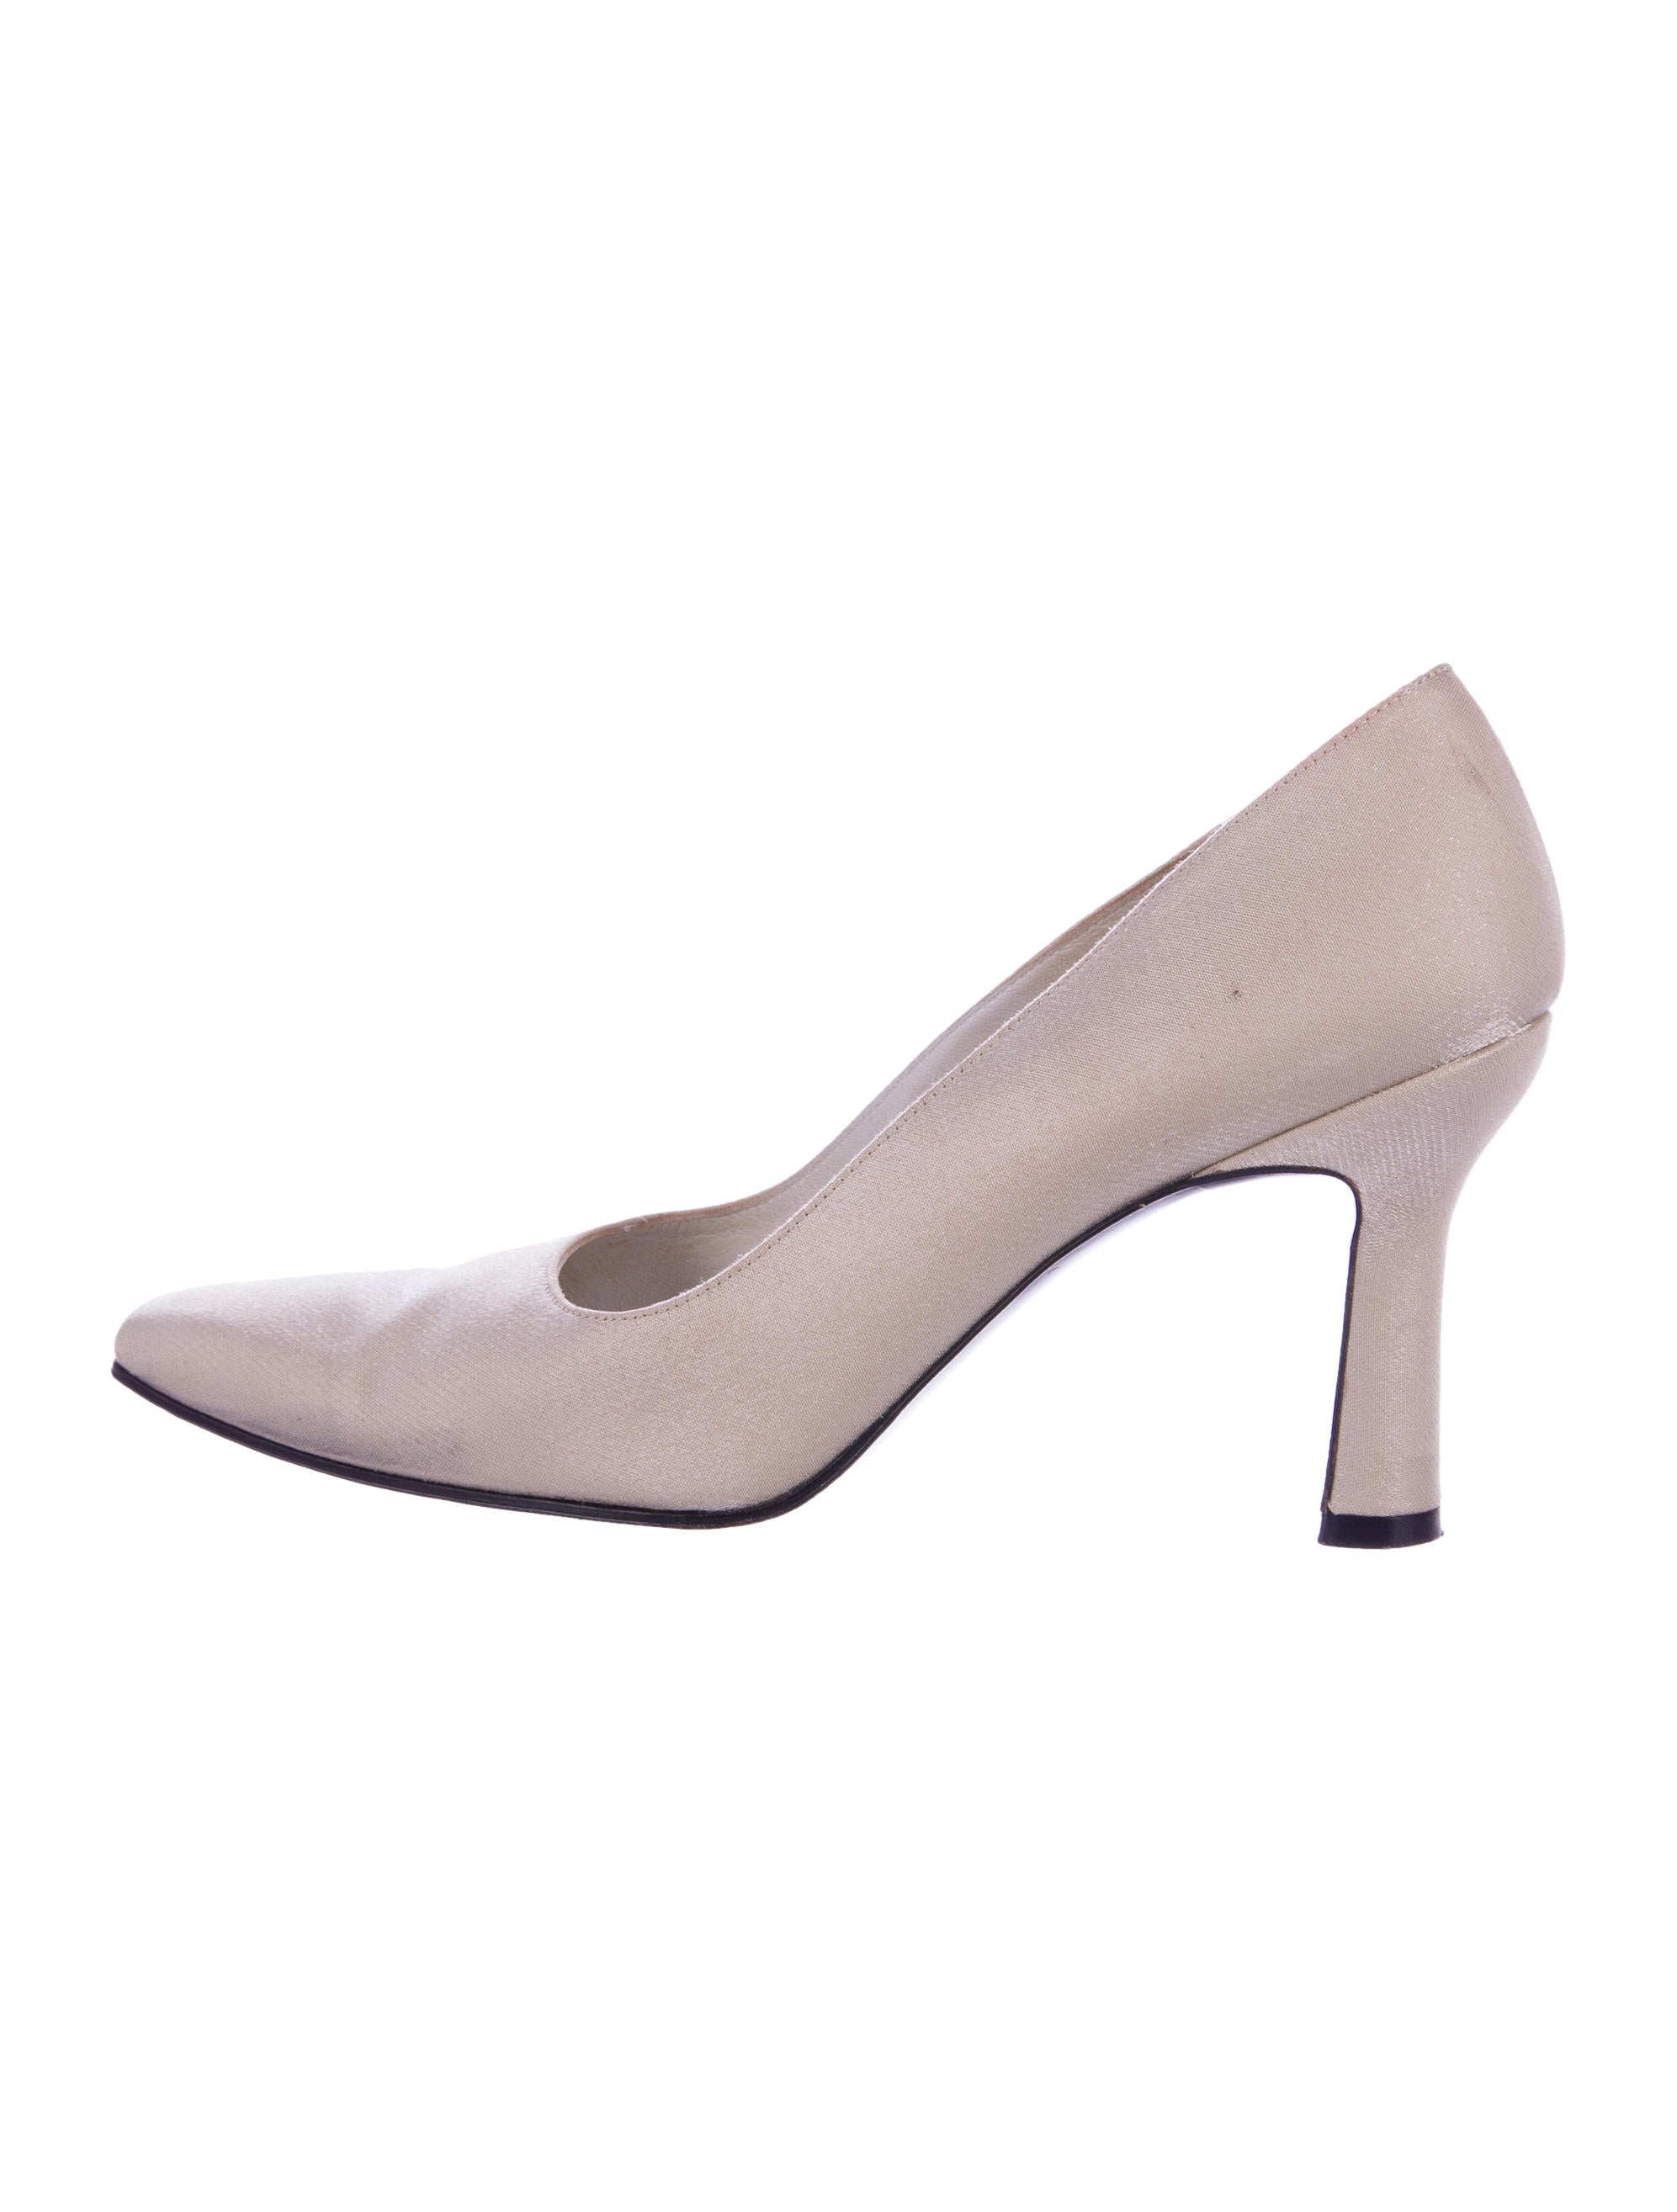 authentic Stuart Weitzman Metallic Square-Toe Pumps discount pay with visa many kinds of sale online PMxdQnUoJ